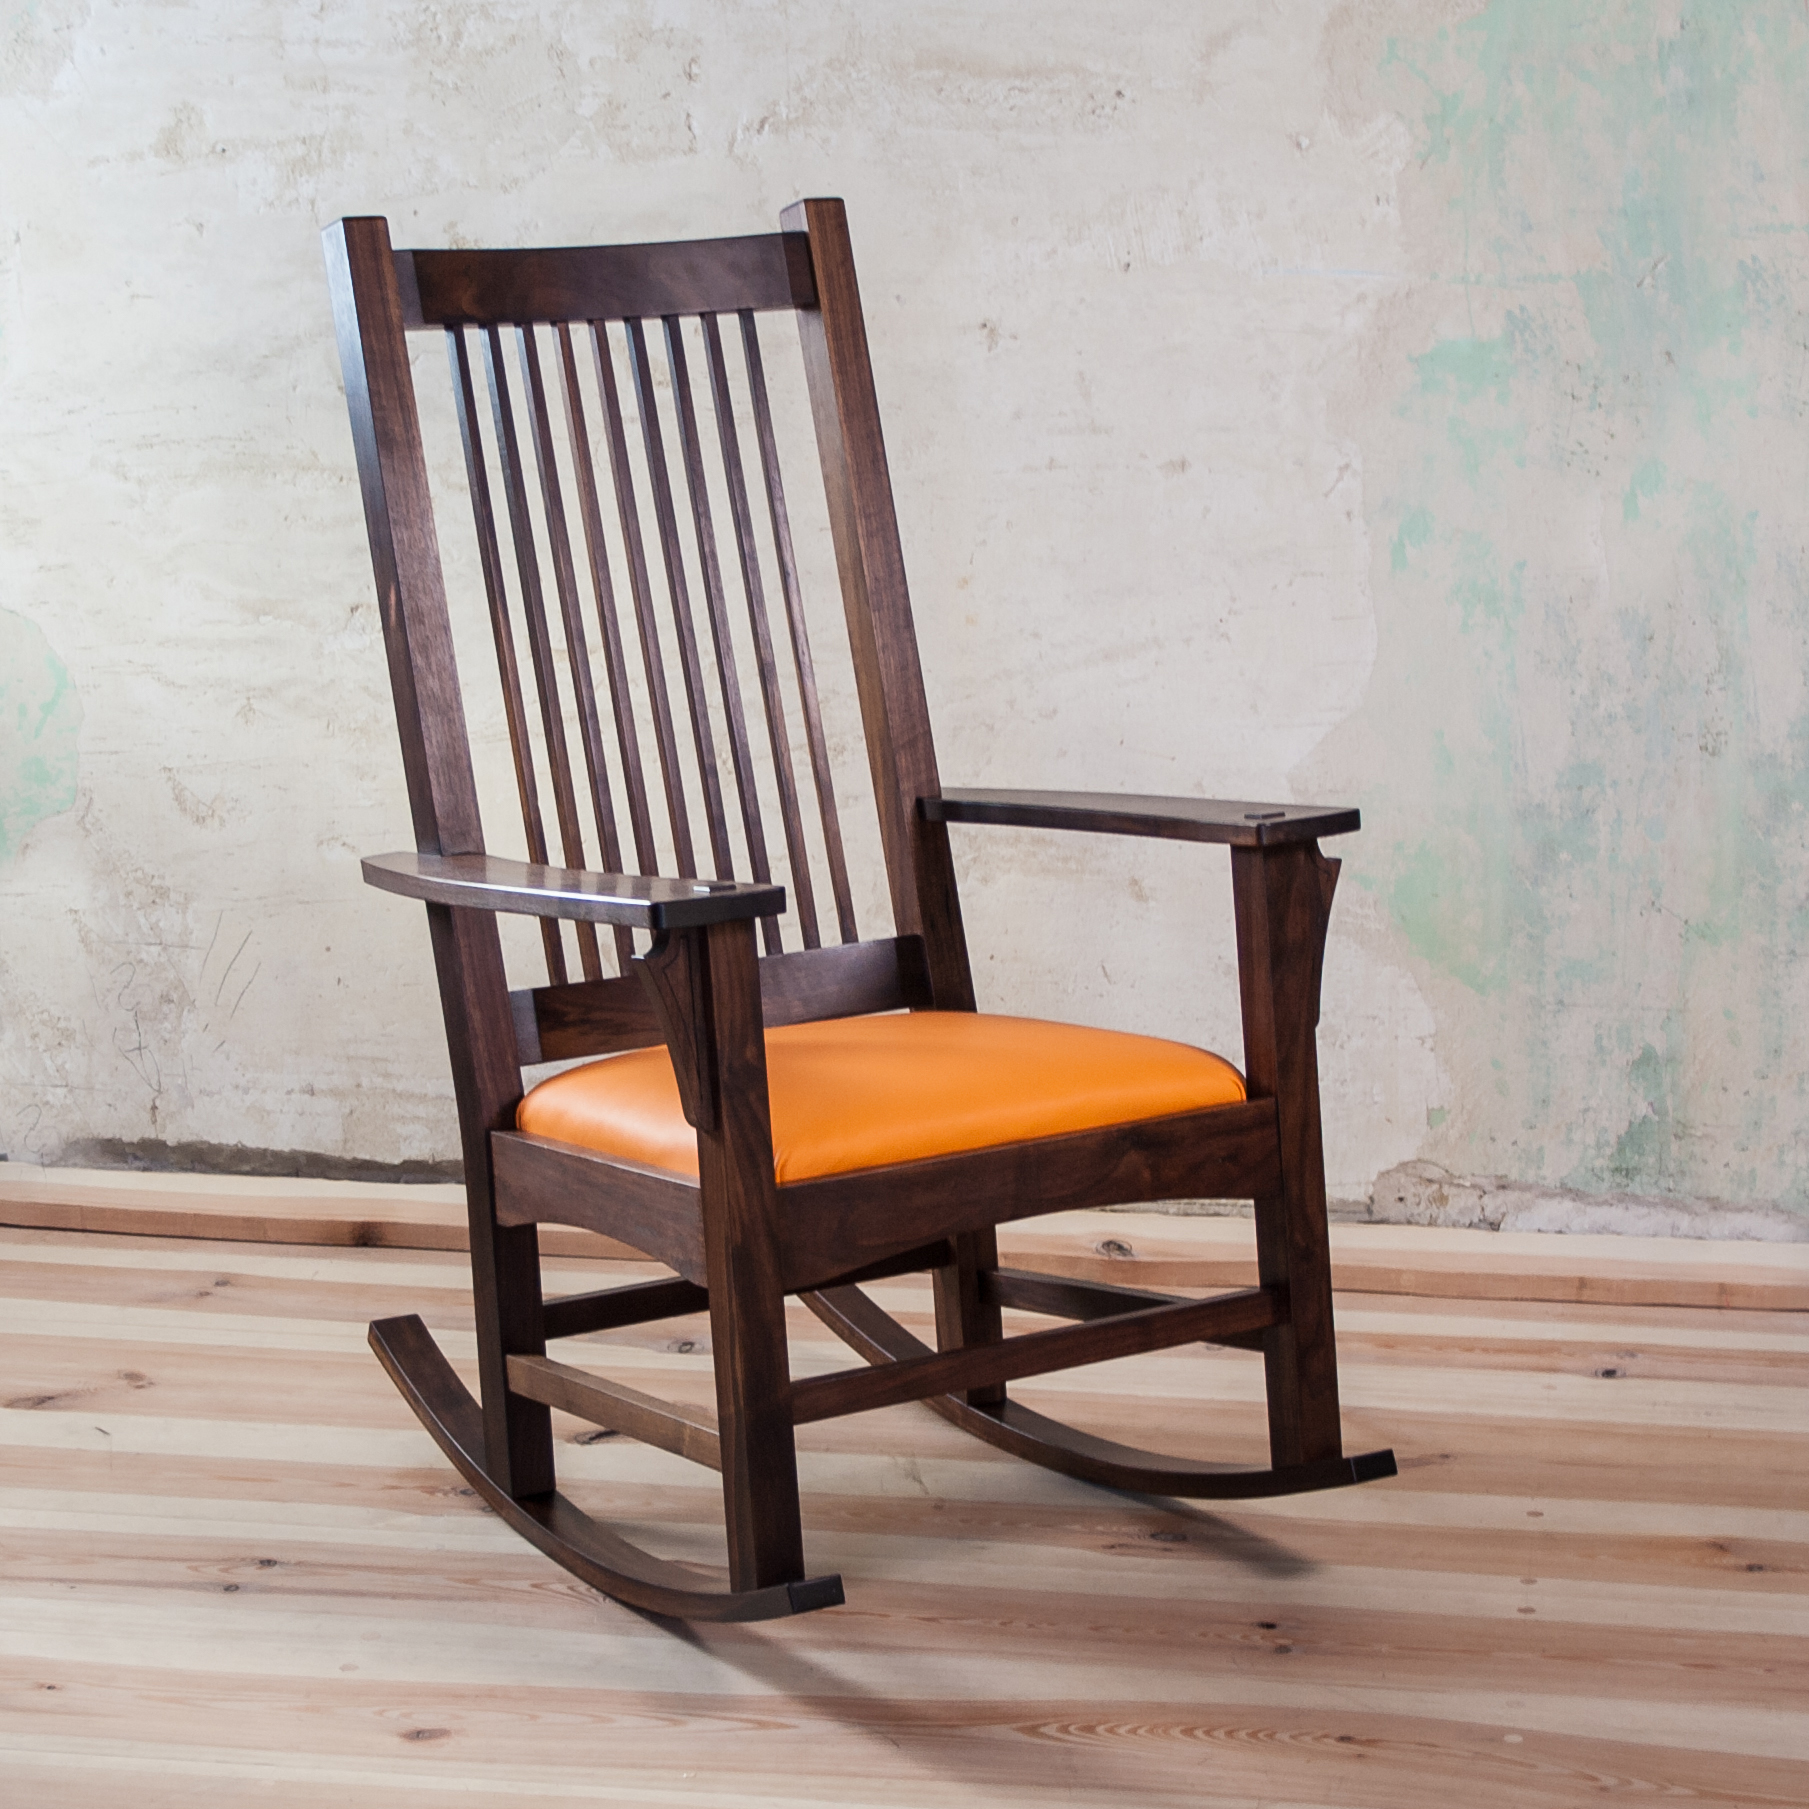 Black Walnut rocking chair, upholstered with coconut fiber and genuine leather, front.